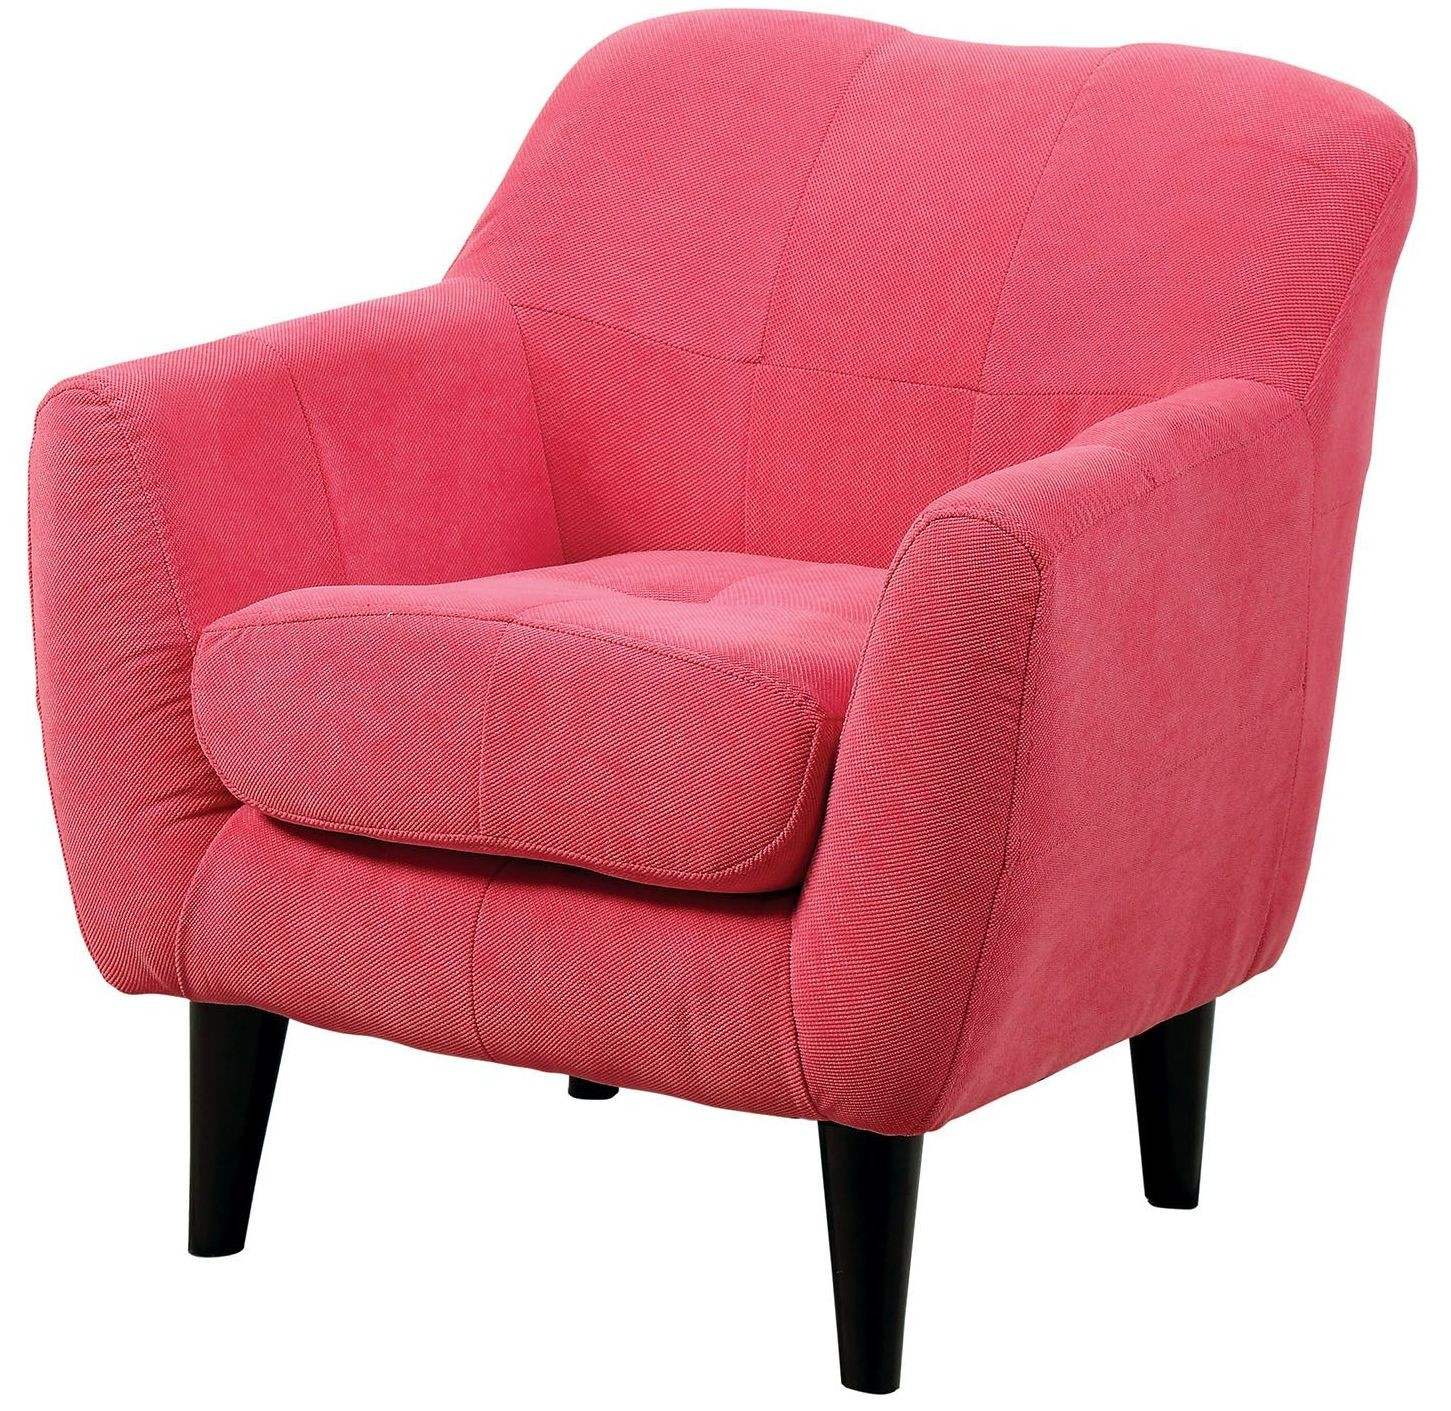 Heidi pink kids chair from furniture of america coleman for Pink kids chair